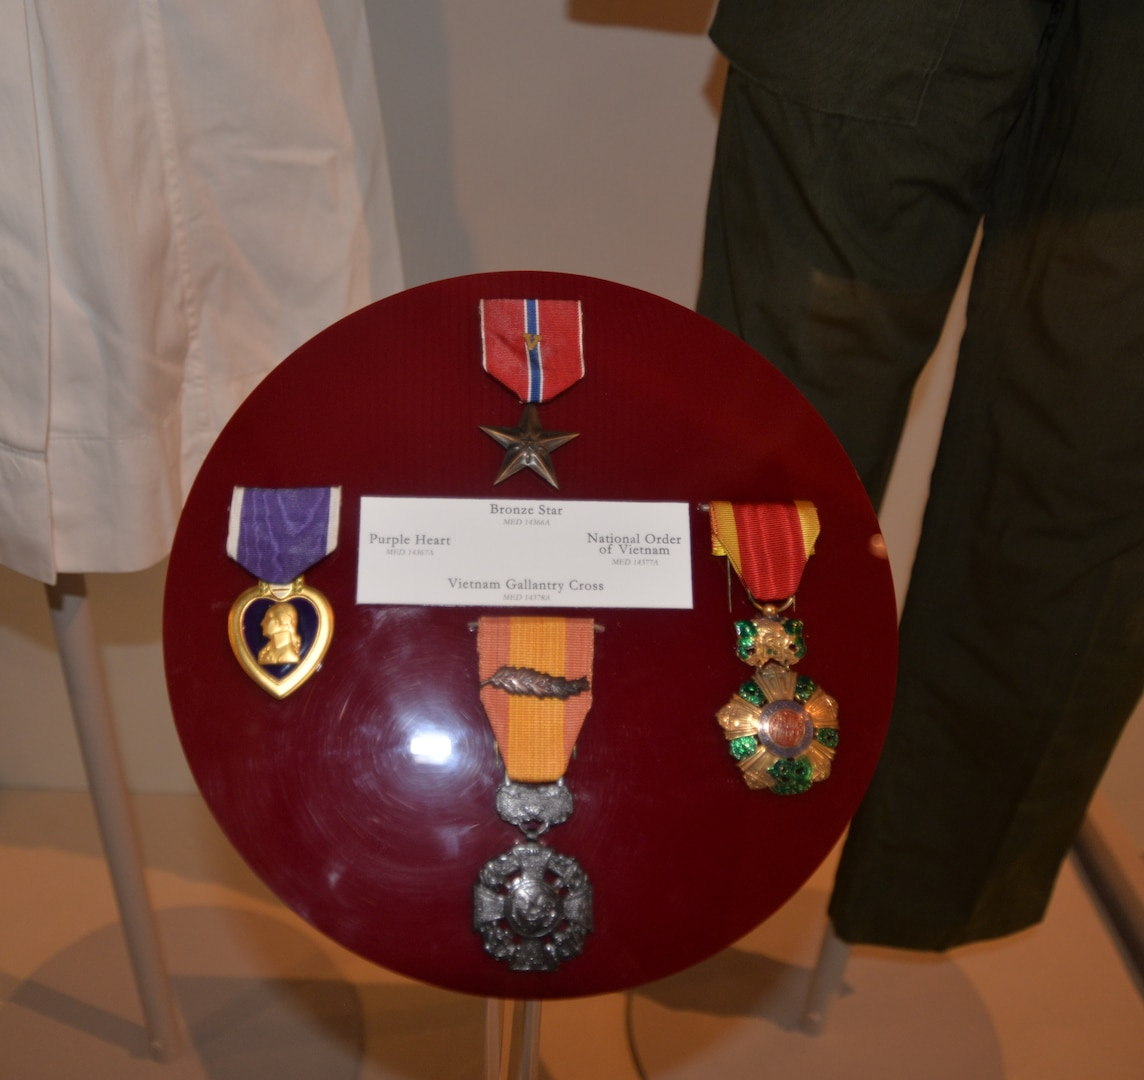 """Medals awarded posthumously to 1st Lt. Sharon Lane, including the Bronze Star """"V"""" for valor, the Purple Heart, the Vietnam Gallantry Cross and the National Order of Vietnam, are included in a new exhibit about Lane, a U.S. Army nurse who was killed in June 1969 while serving at the 312th Evacuation Hospital in Chu Lai, South Vietnam. She was the only U.S. military nurse killed by enemy fire during the Vietnam War."""